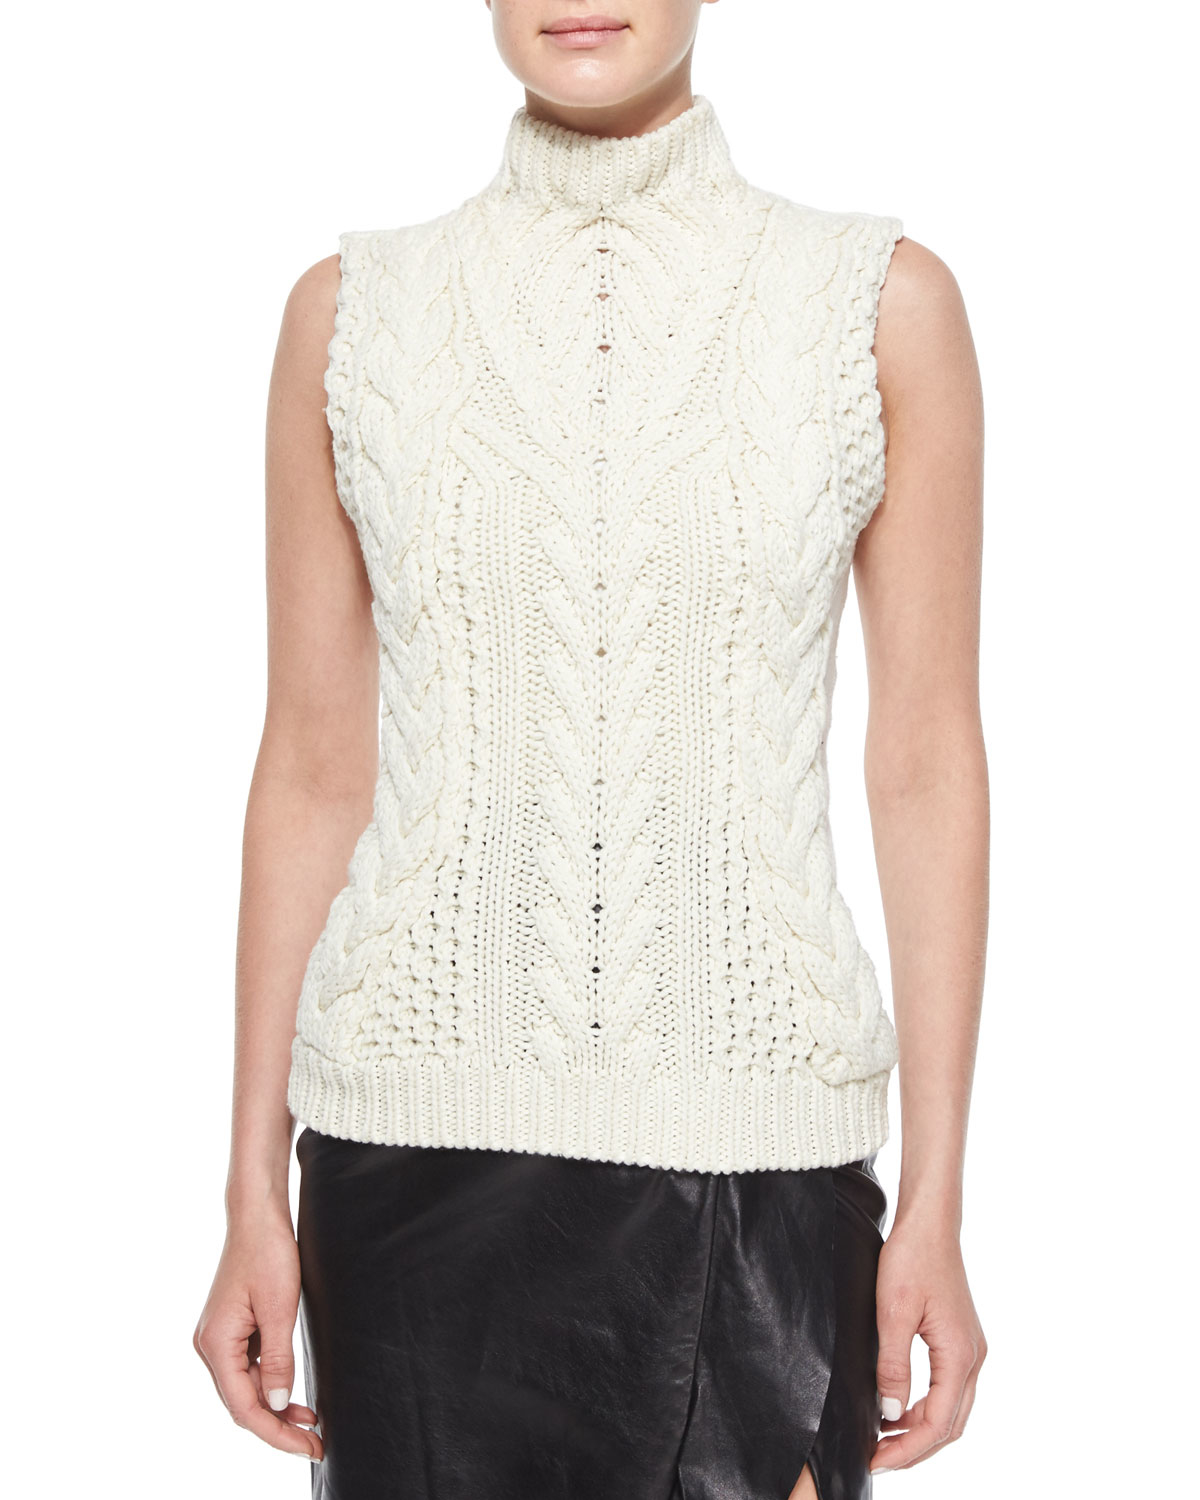 Knitting Pattern For Sleeveless Sweater : Altuzarra Sleeveless Cable-knit Sweater in Natural Lyst